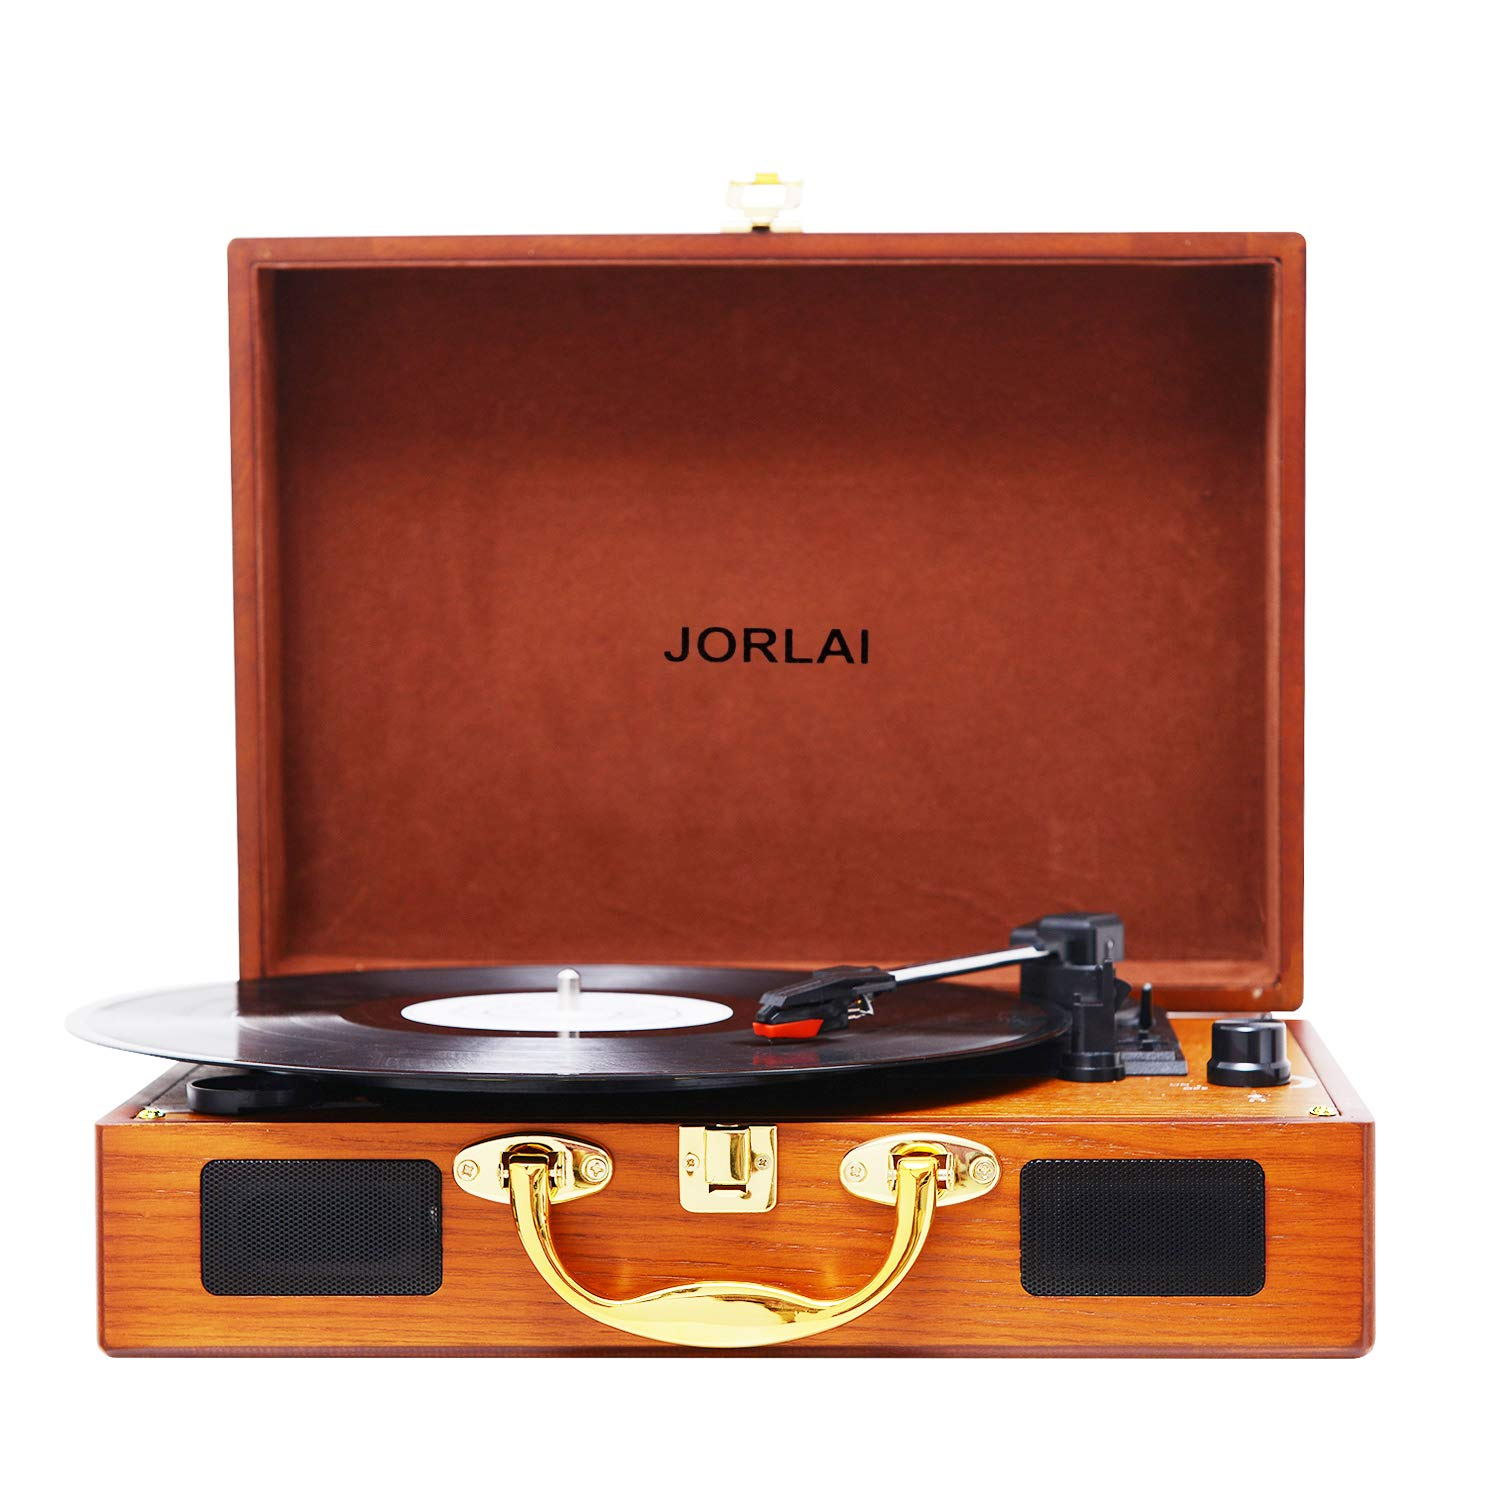 JORLAI Vinyl Record Player, 3 Speed Suitcase Turntable with Built-in Speakers, PC Recorder, Headphone Jack, RCA line Out - Wood